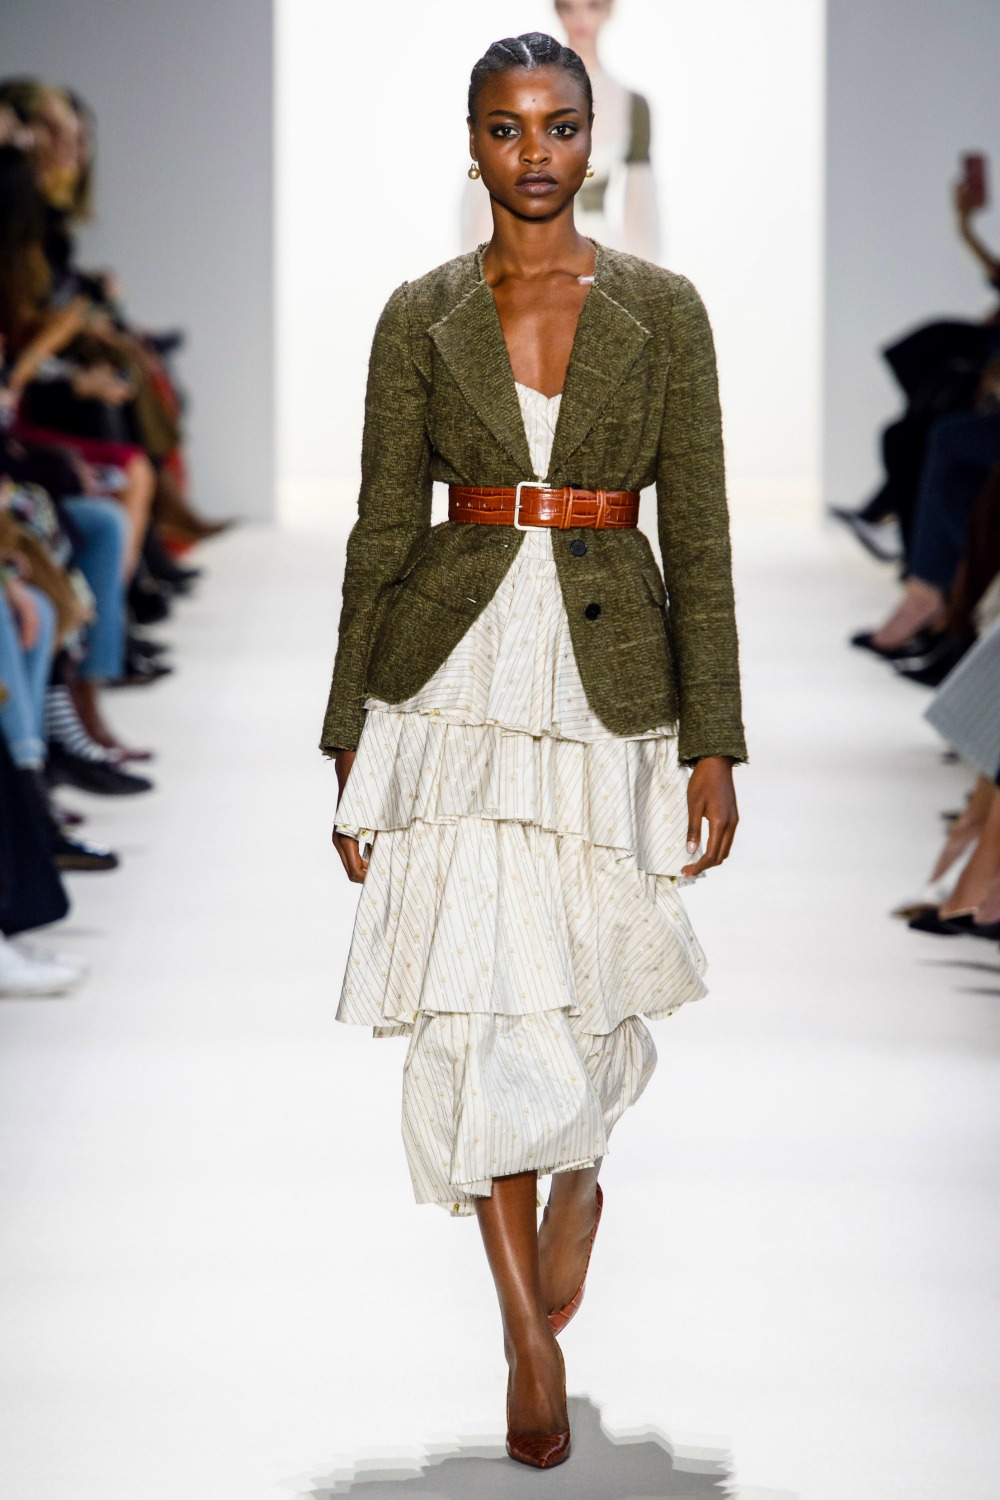 2019 Fall Fashion Trends to Wear Now I Belted Waist on Brock Collection FW19 Runway #FallFashion #Runway #Trends #FashionBlog #Styleinspo